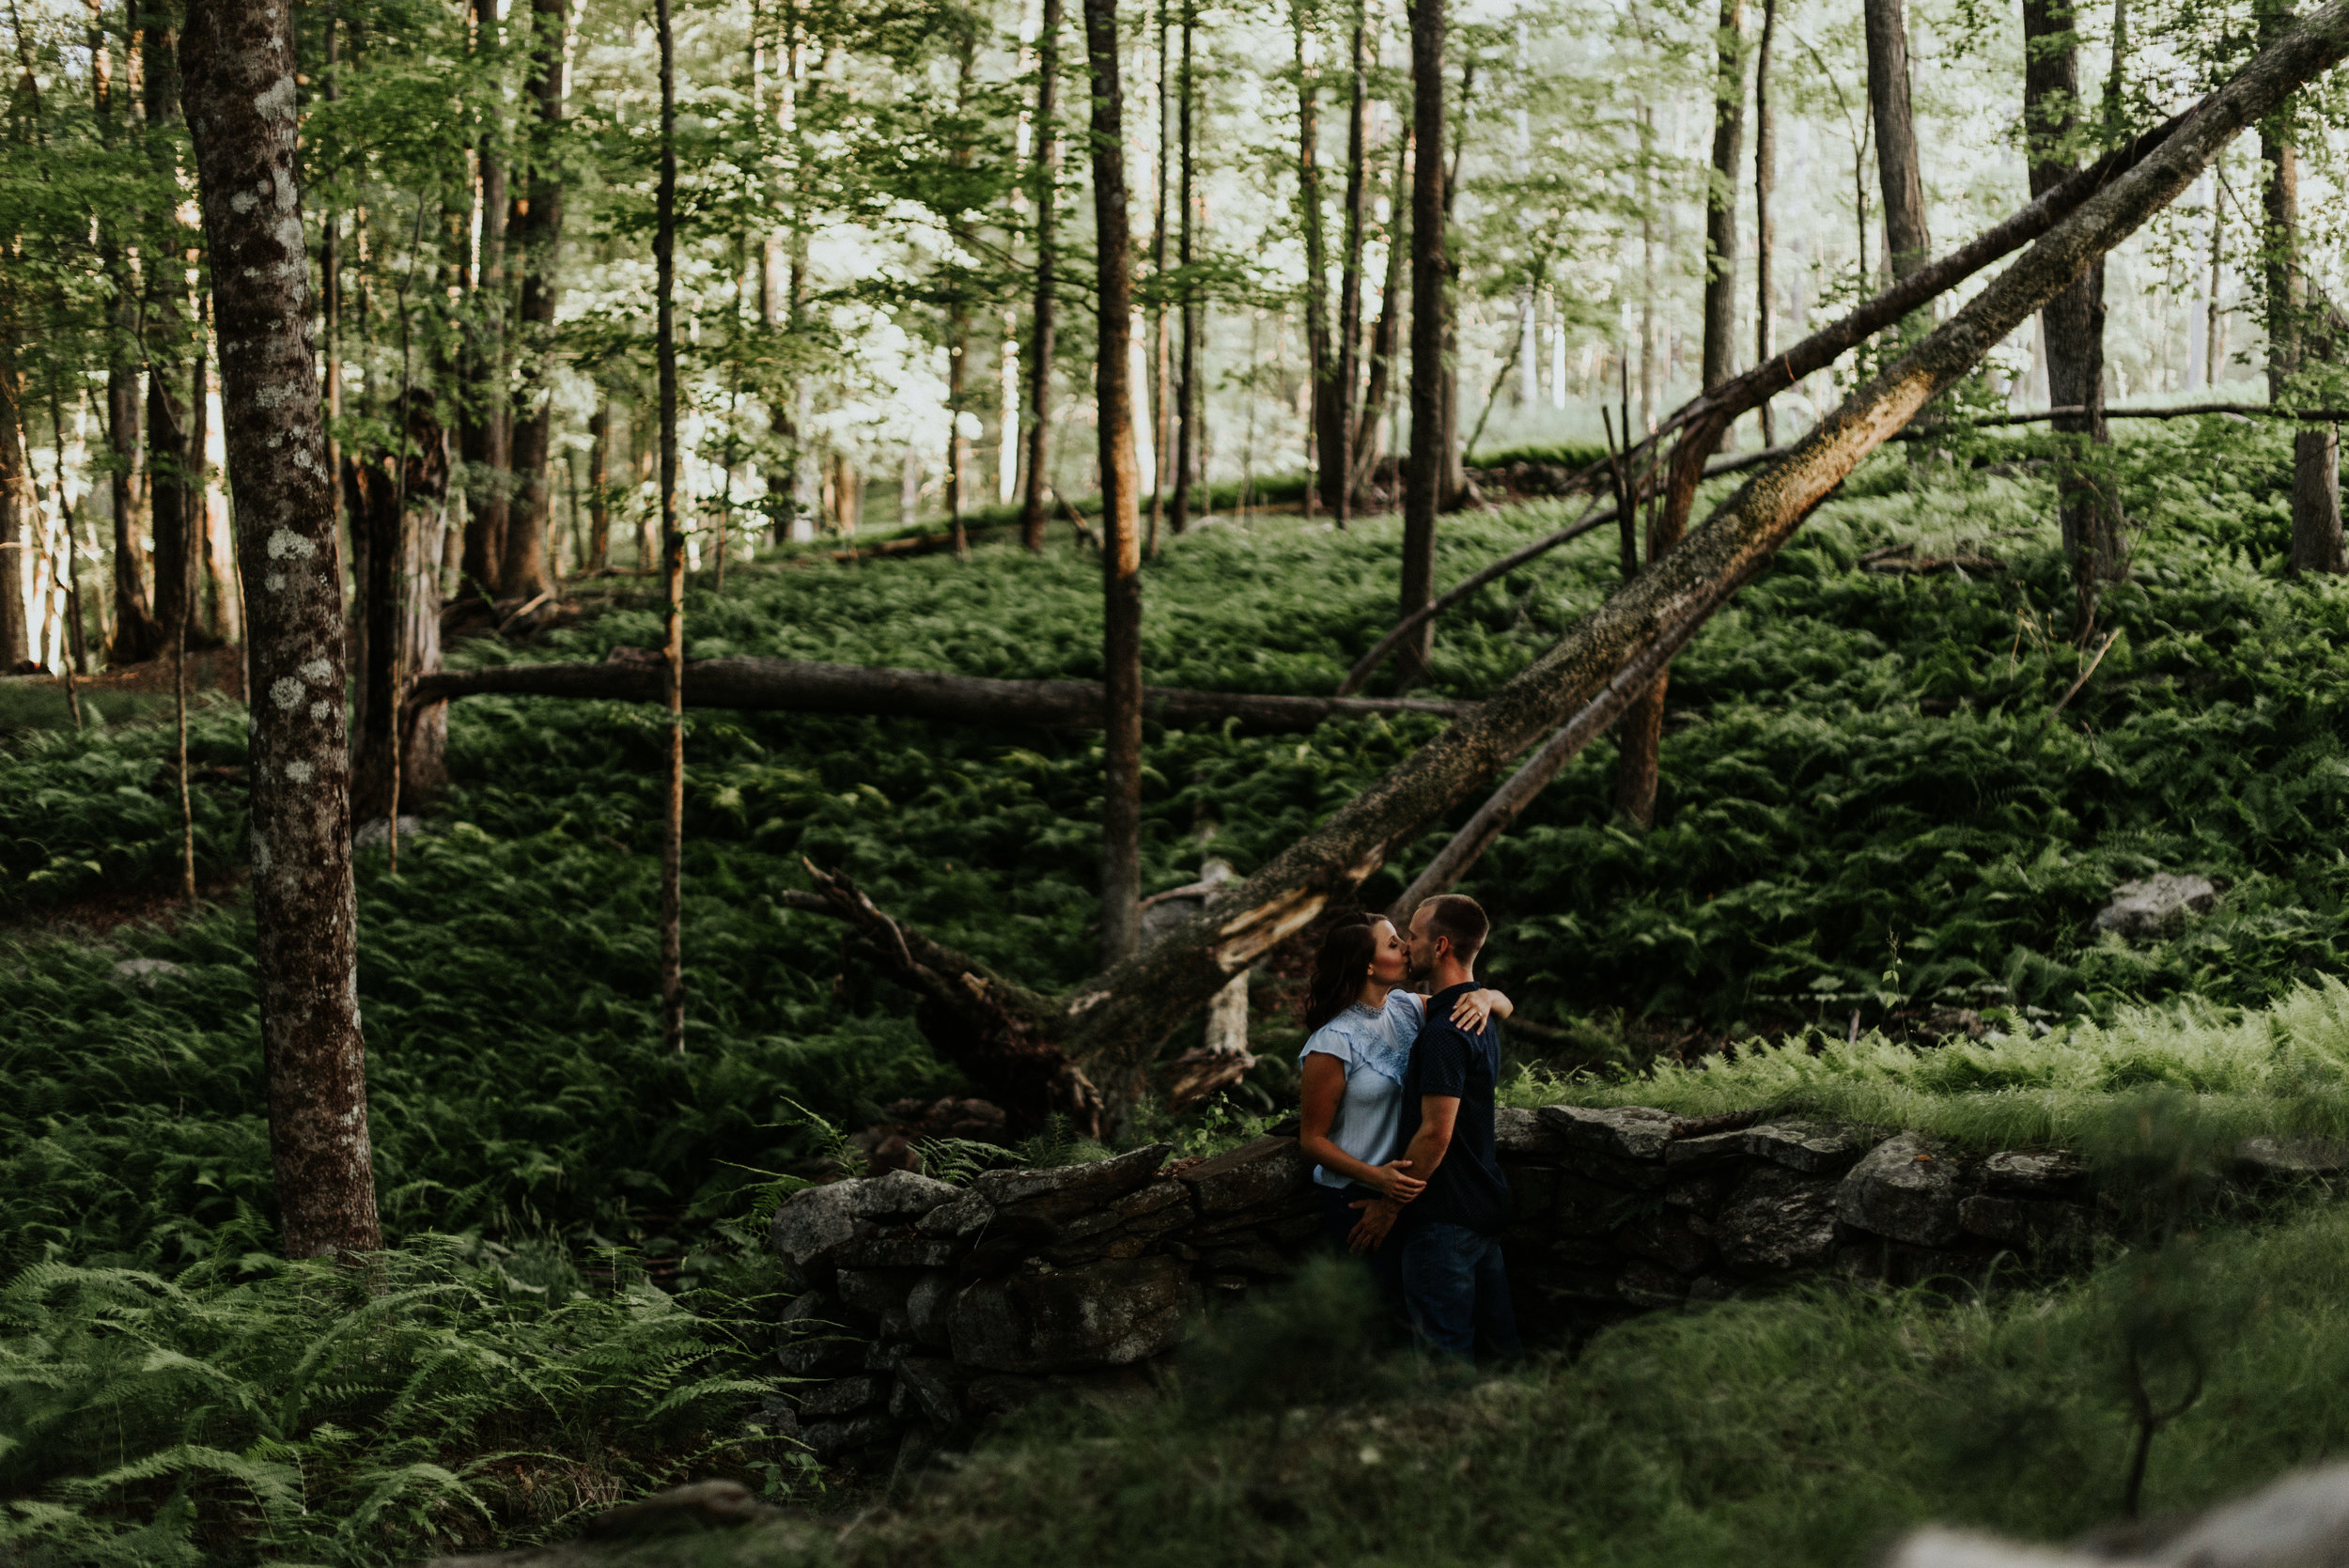 Amanda & Sean-Massachusetts-Forest Waterfront Engagement Session-Woodsy Outdoor Couples Session-Photographer-110.jpg